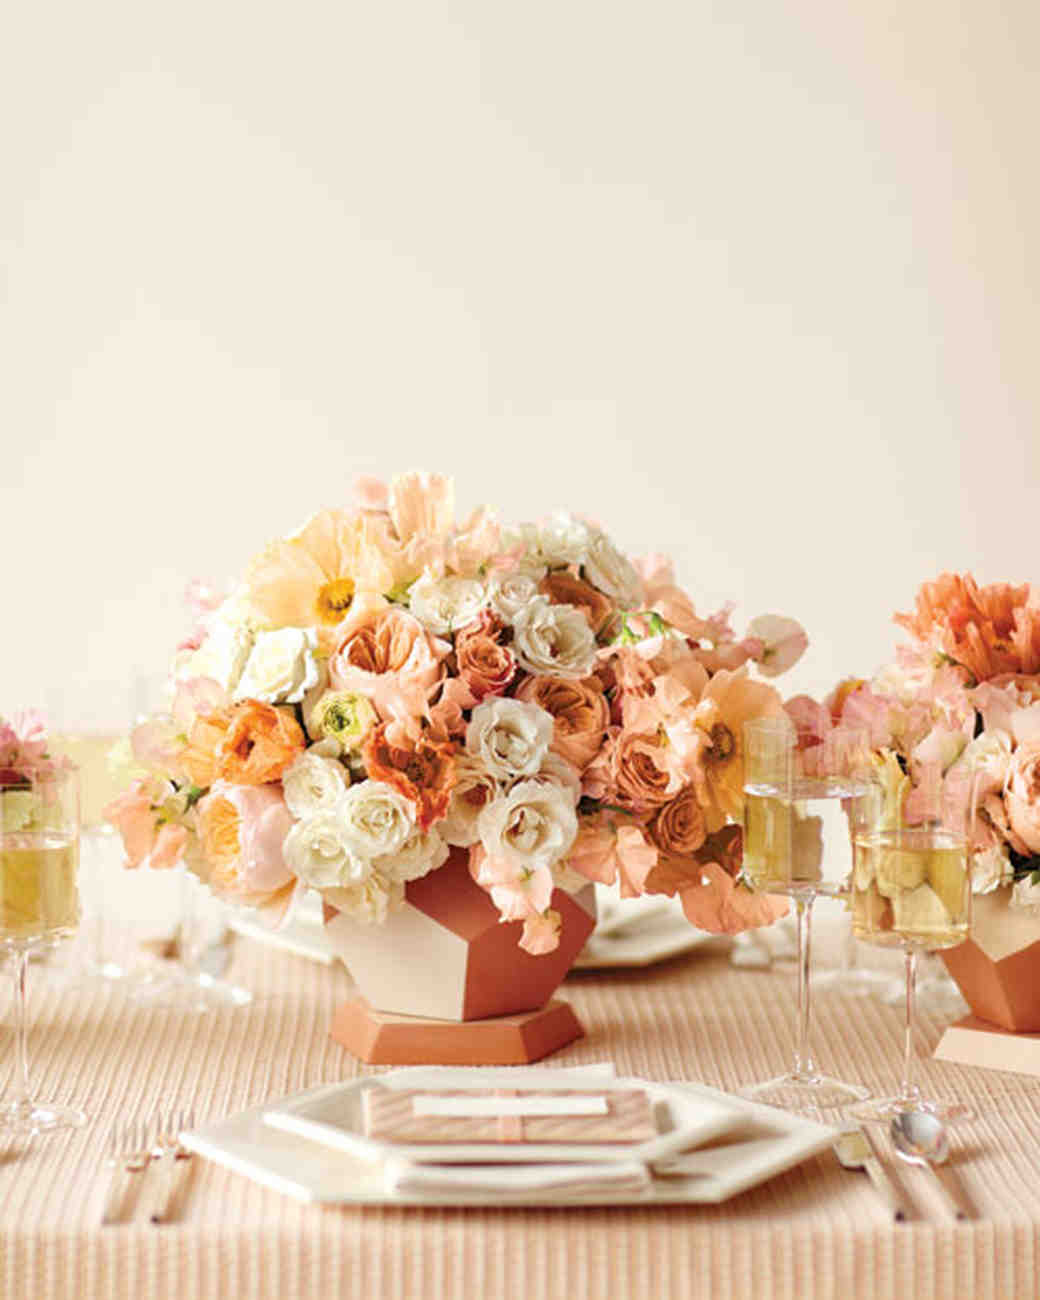 Peaches and cream is a wedding color combination that is set the table junglespirit Gallery